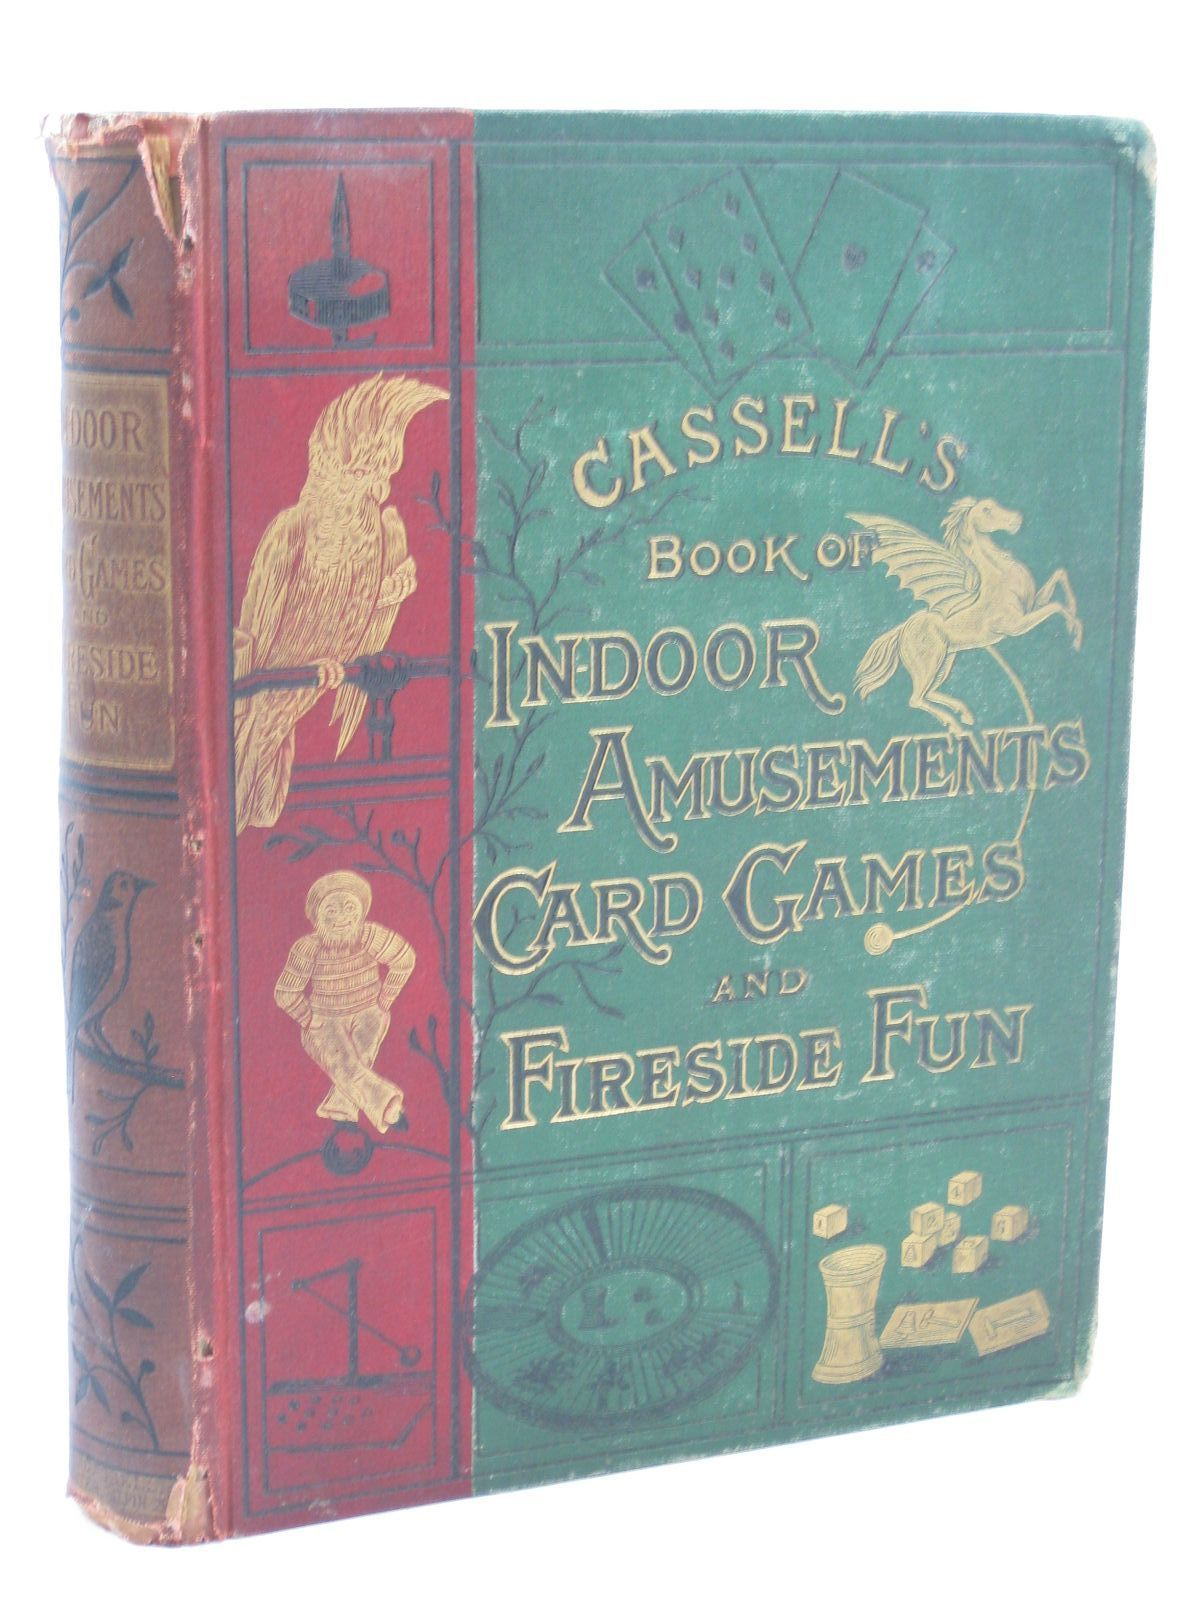 Photo of CASSELL'S BOOK OF INDOOR AMUSEMENTS, CARD GAMES, AND FIRESIDE FUN published by Cassell & Co. Ltd. (STOCK CODE: 1506806)  for sale by Stella & Rose's Books